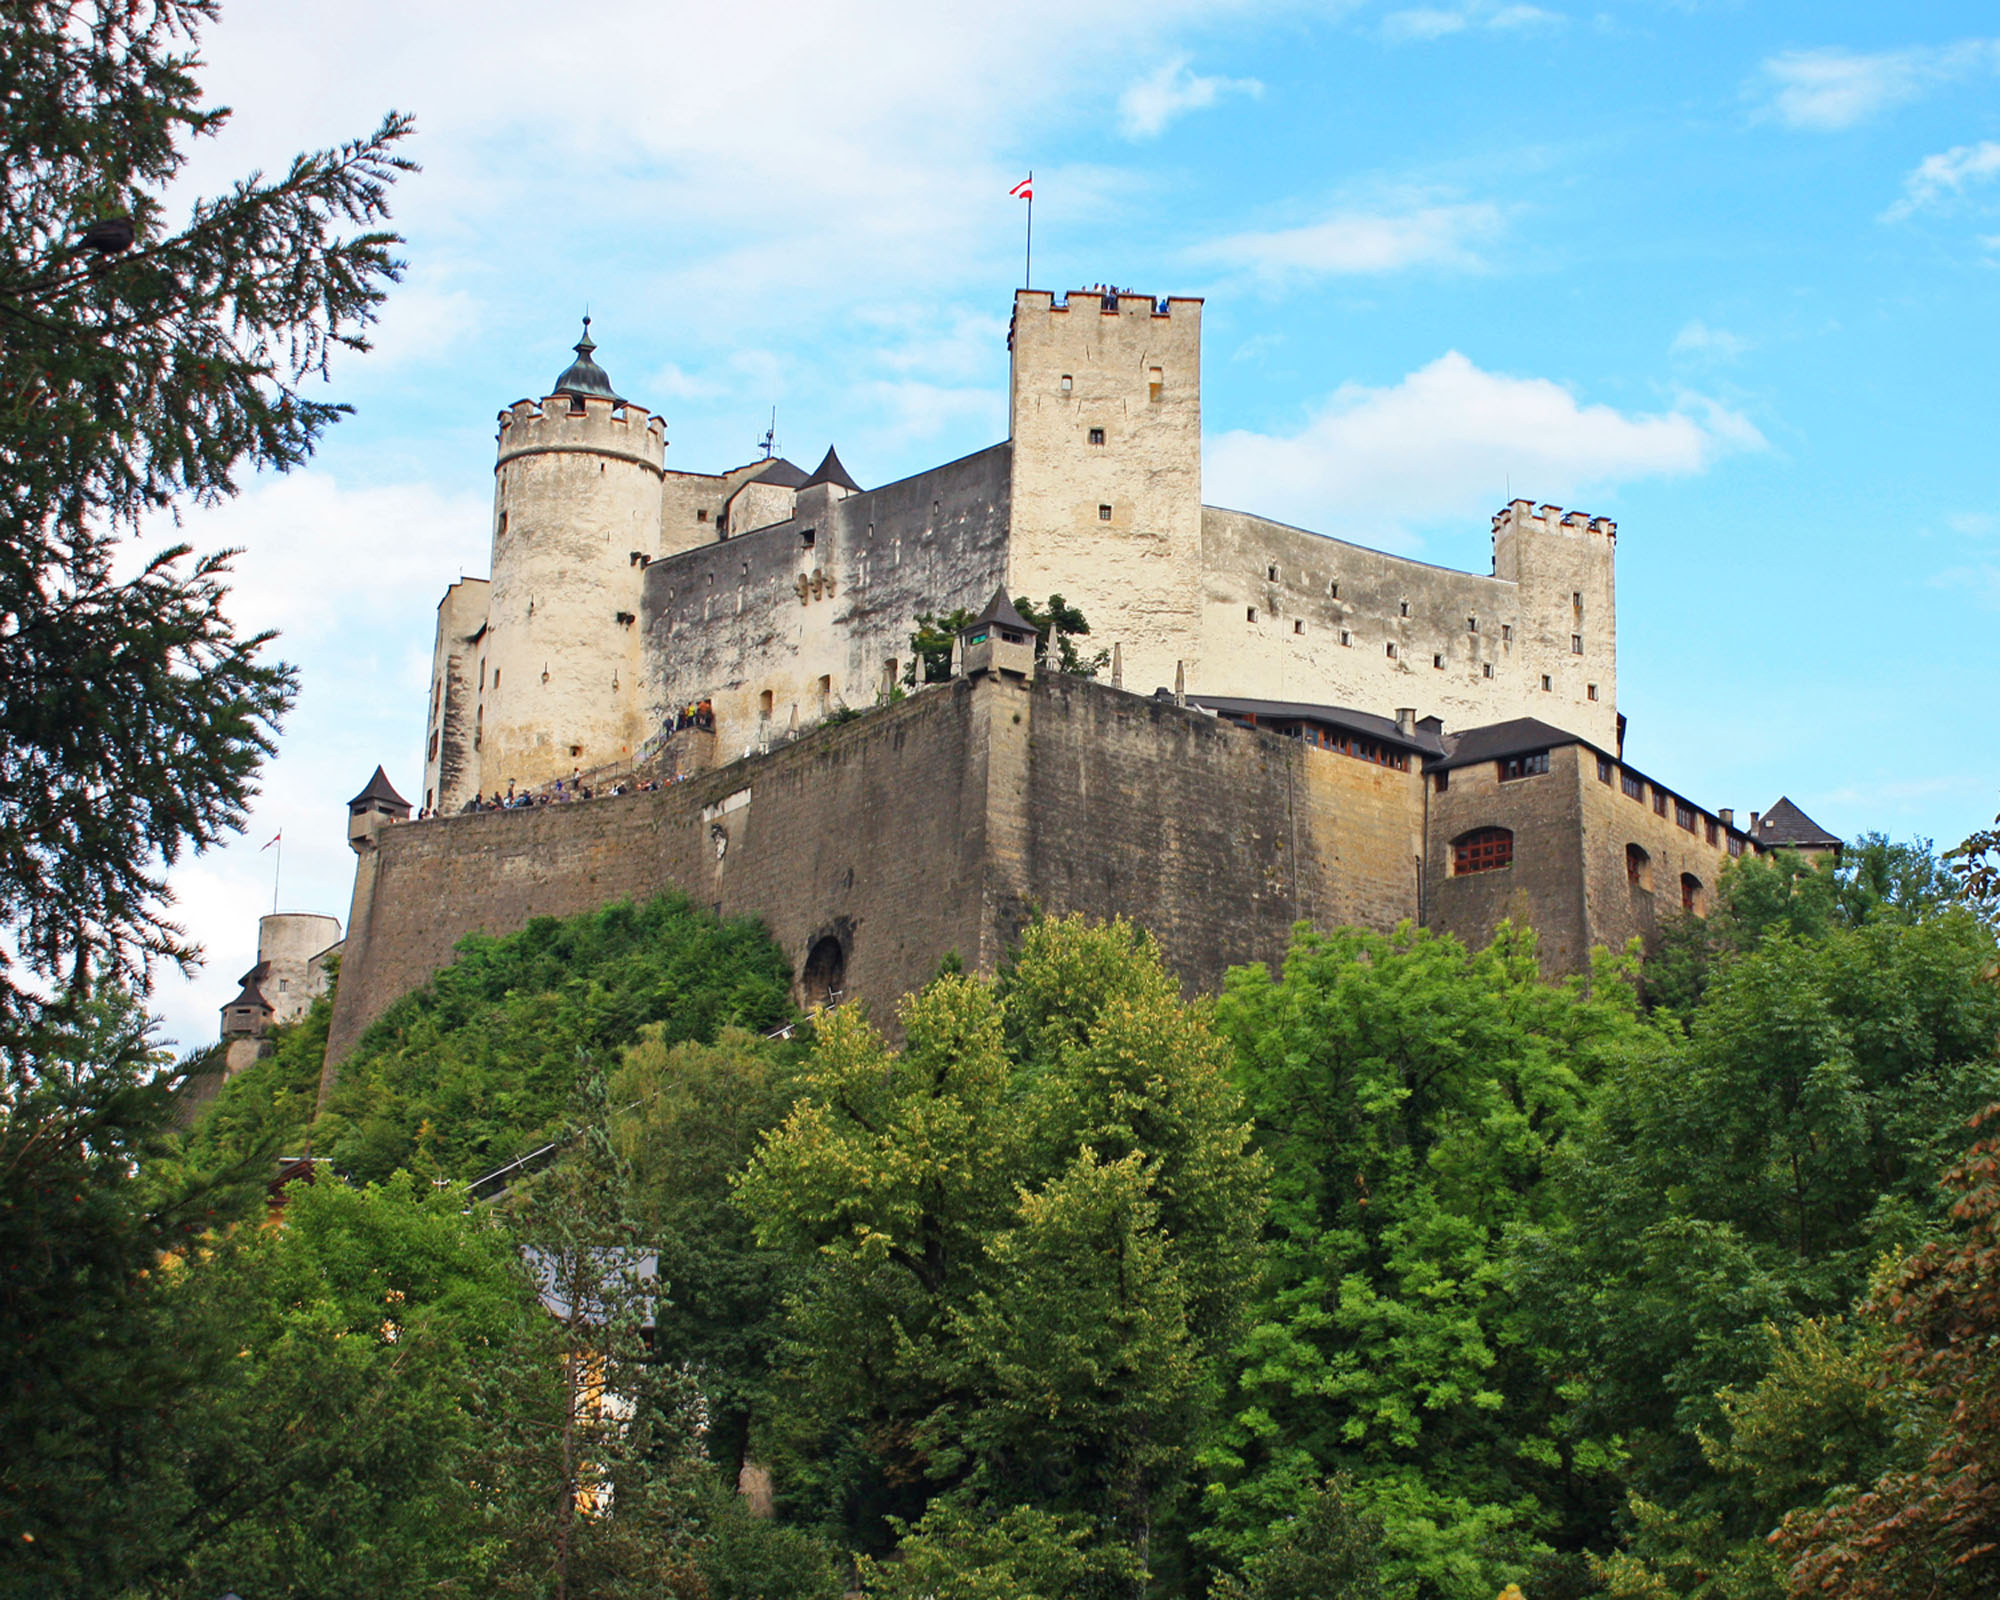 A view of Hohensalzburg Fortress.